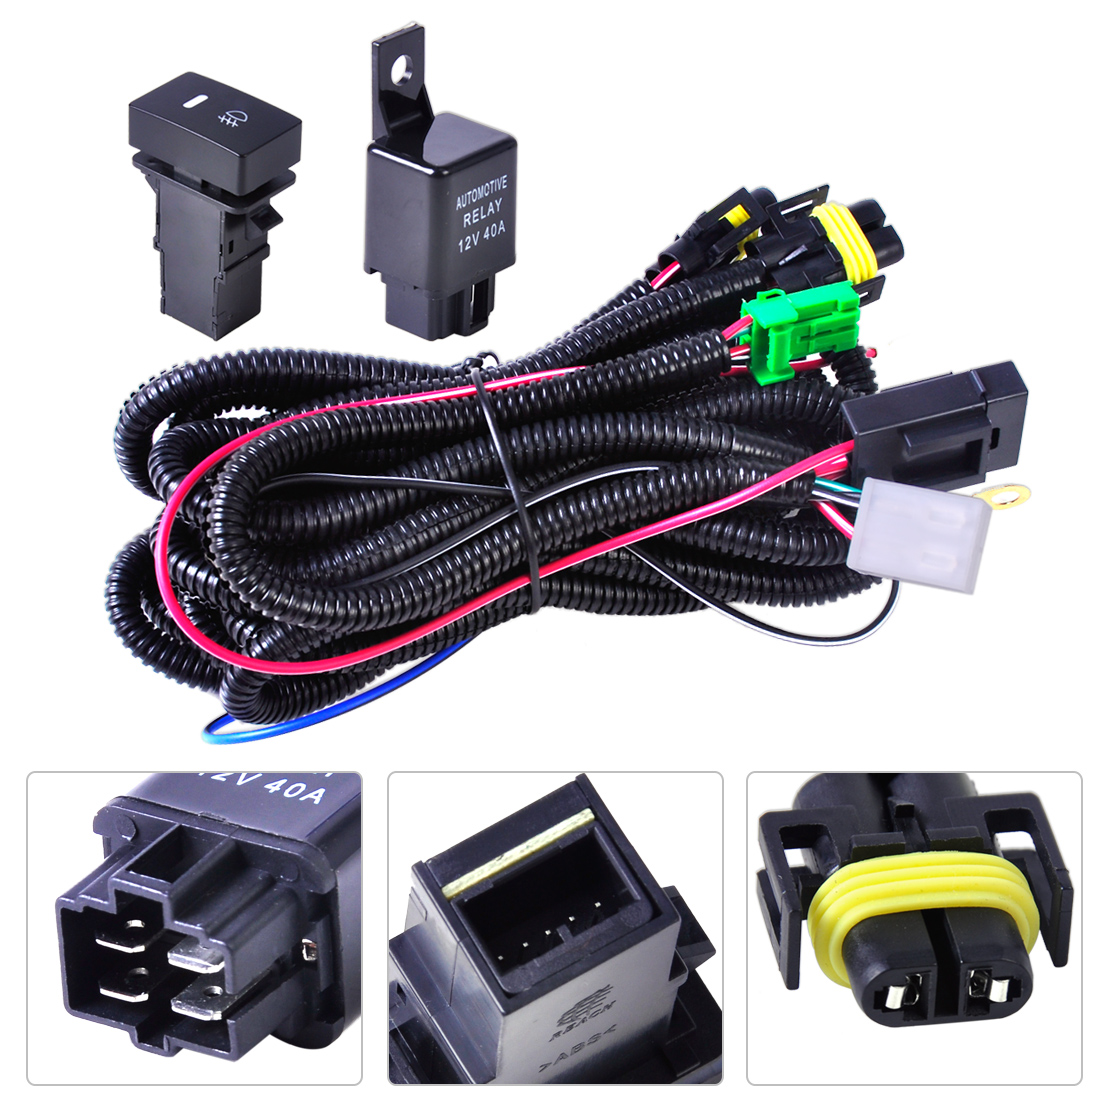 1 wiring harness sockets switch for h11 fog light lamp ford focus 2001 mustang fog light wiring harness at crackthecode.co